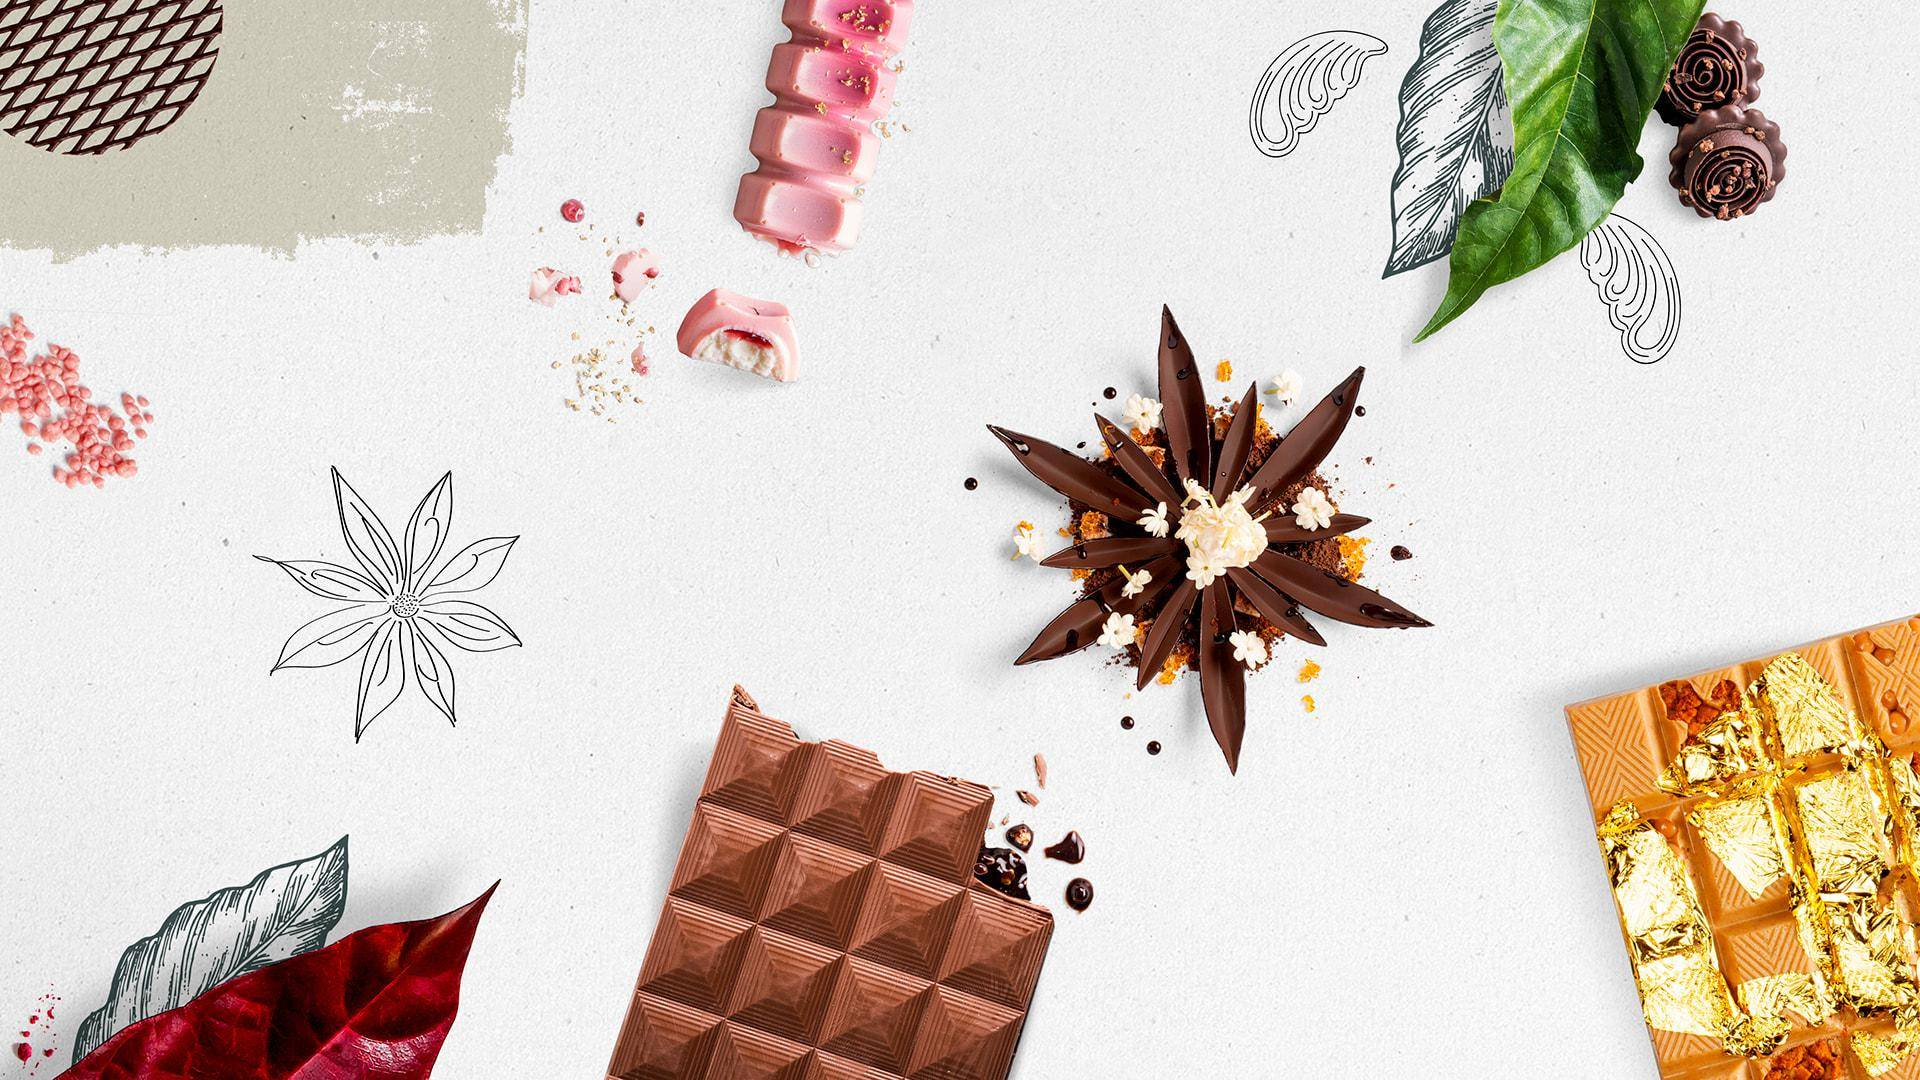 Full-Year Results 2019/20 of the Barry Callebaut Group